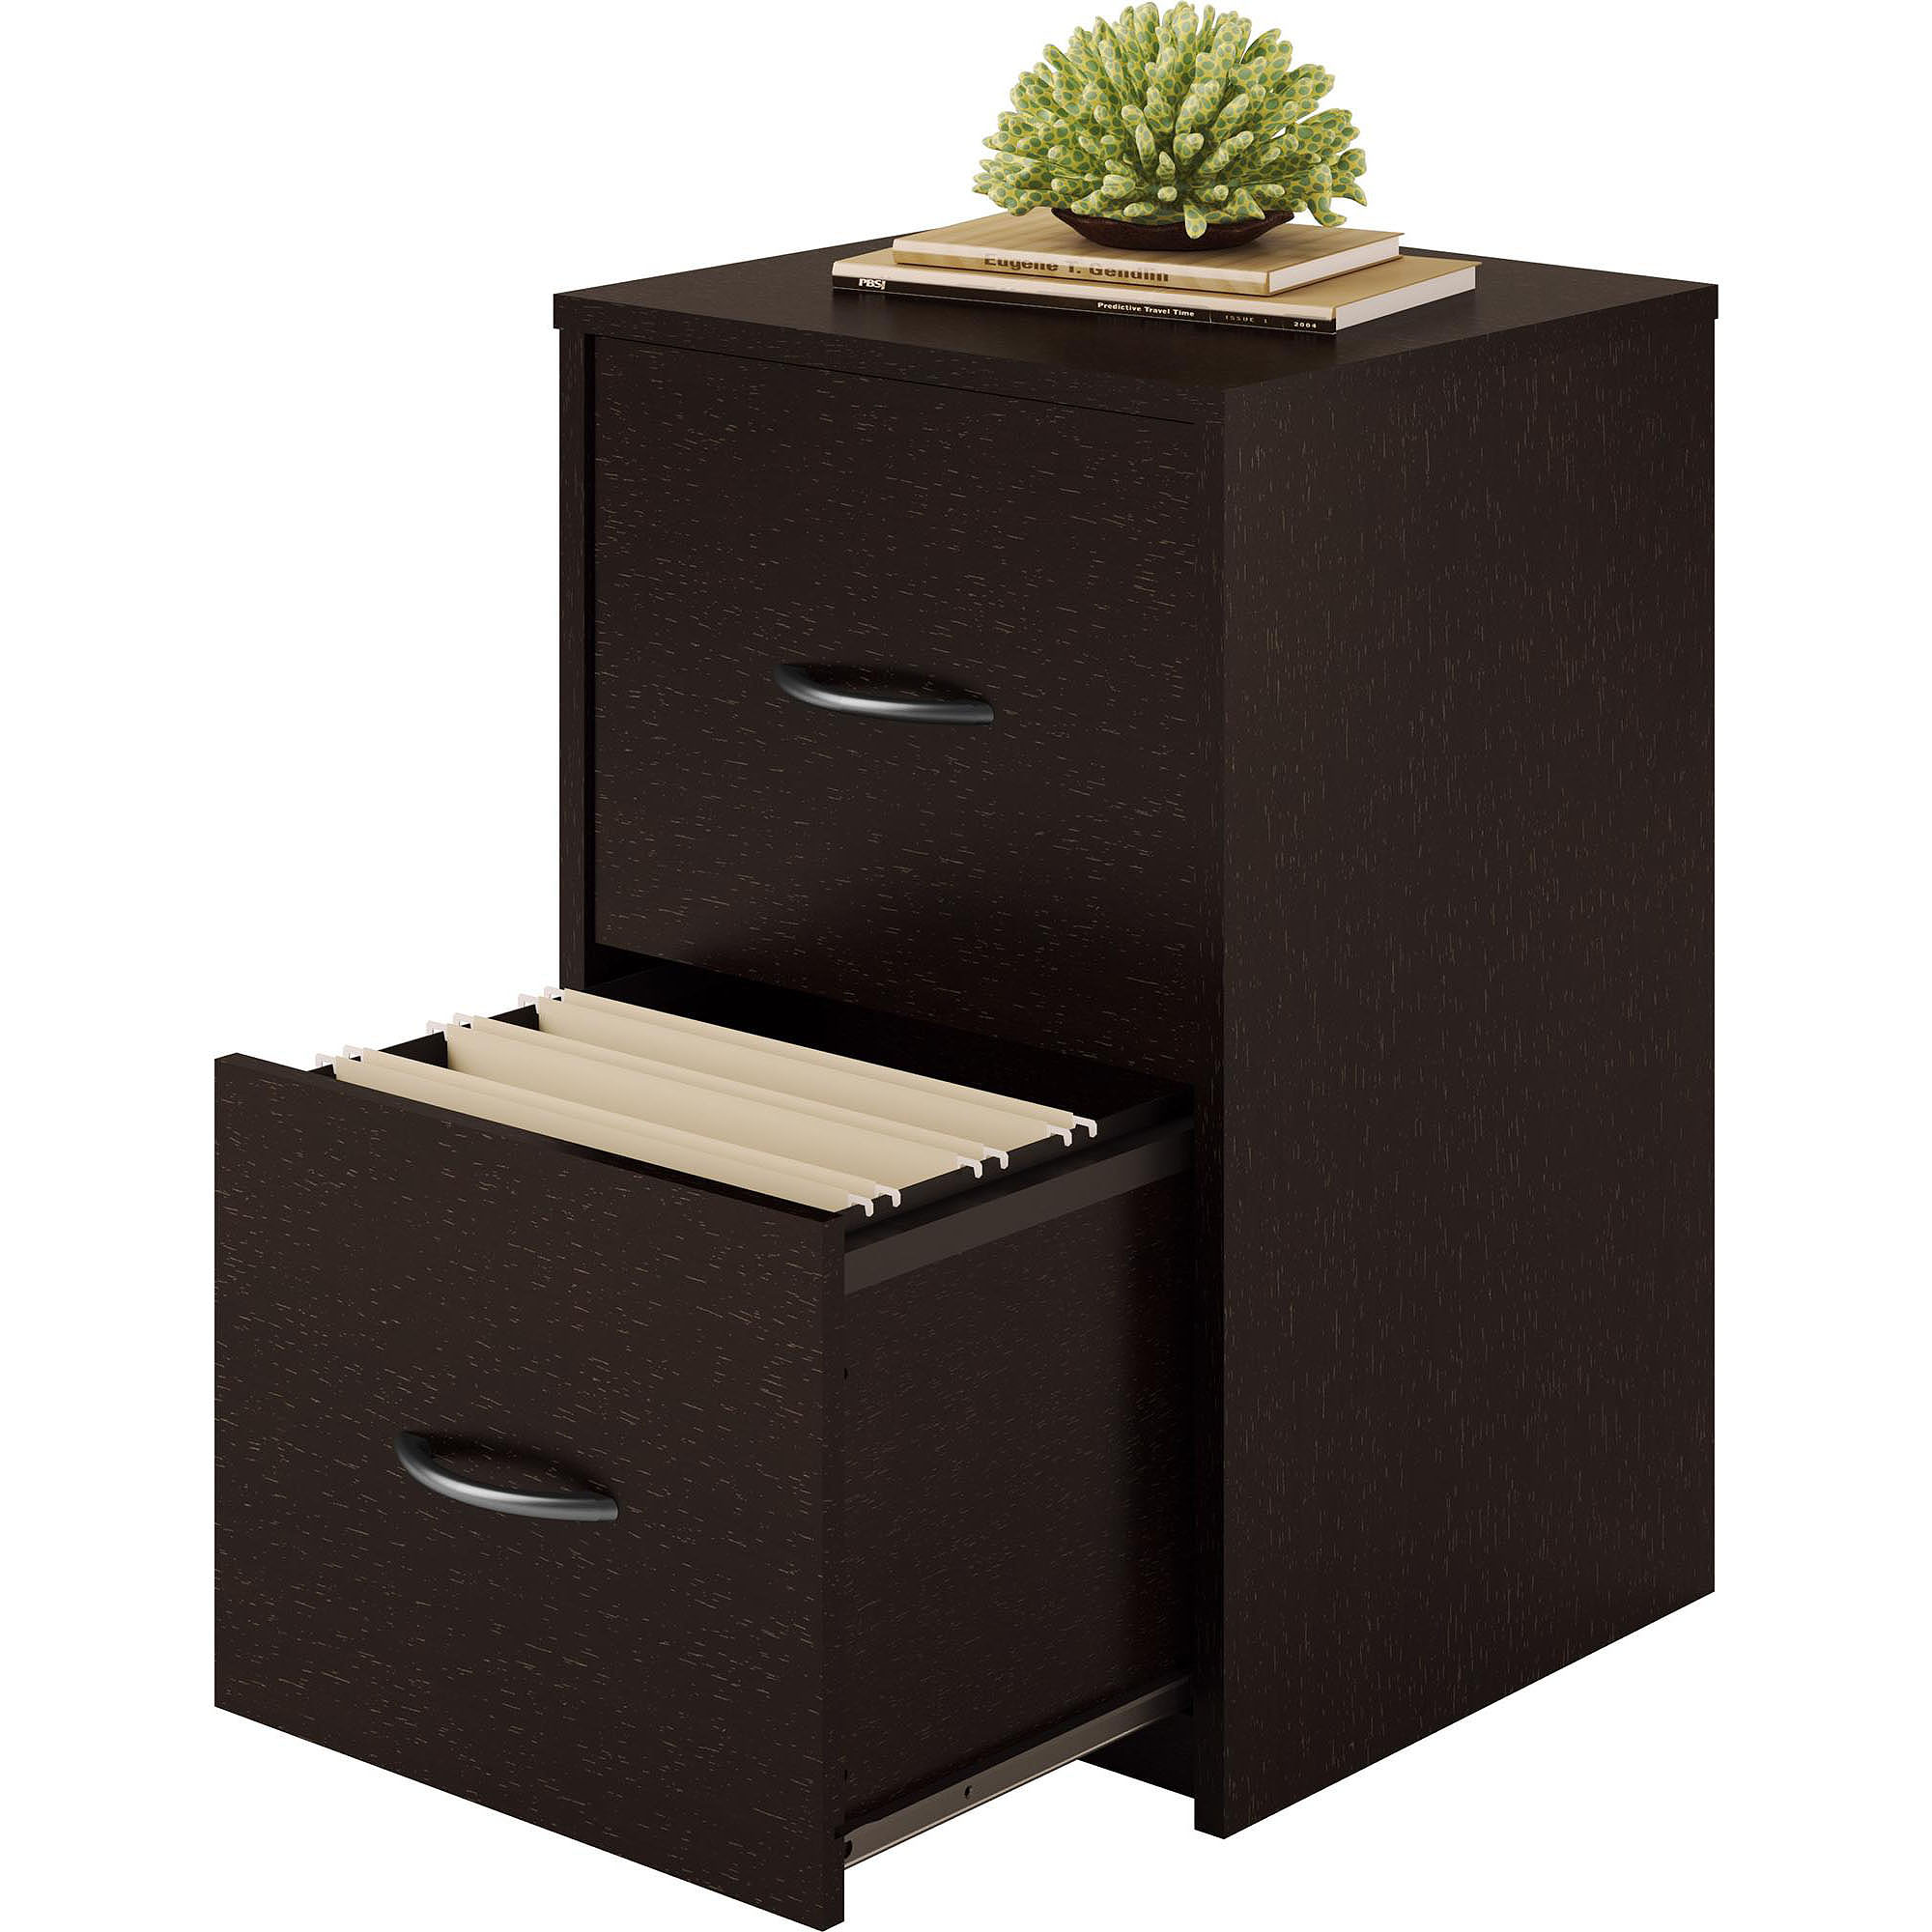 Charmant Ameriwood Home Core 2 Drawer File Cabinet, Multiple Colors   Walmart.com